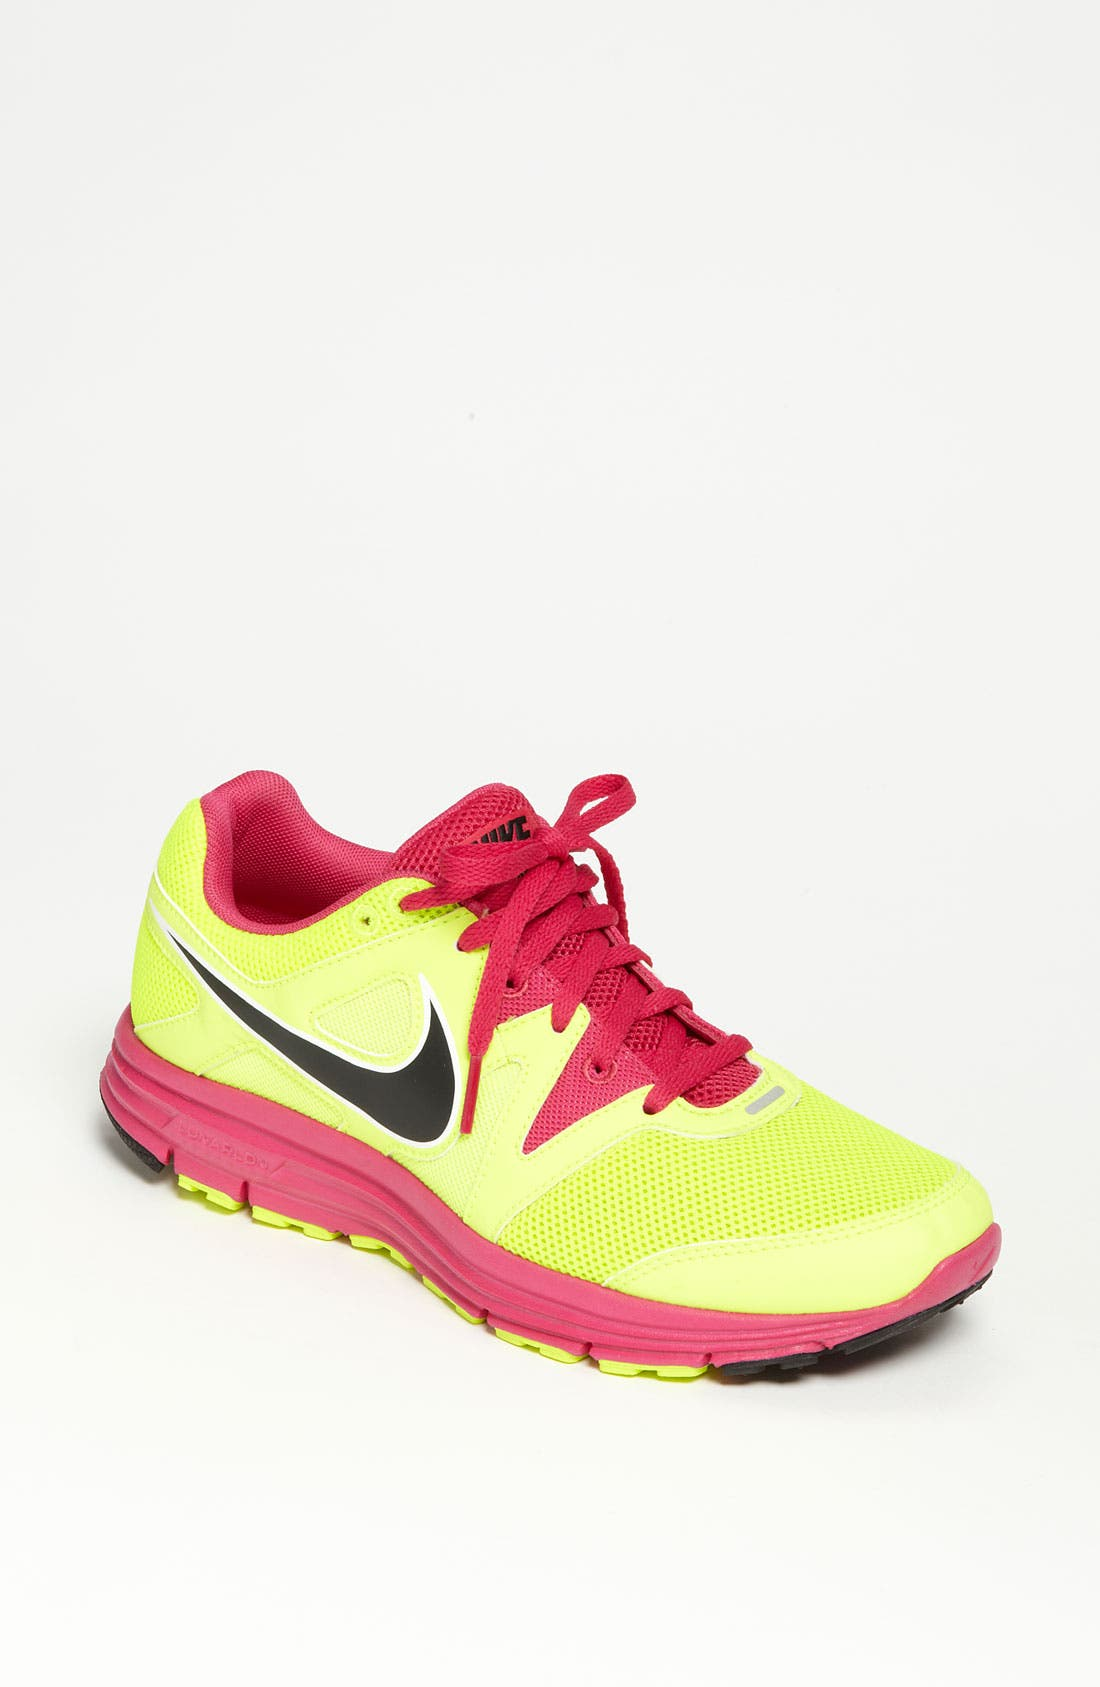 Main Image - Nike 'Lunarfly 3' Running Shoe (Women)